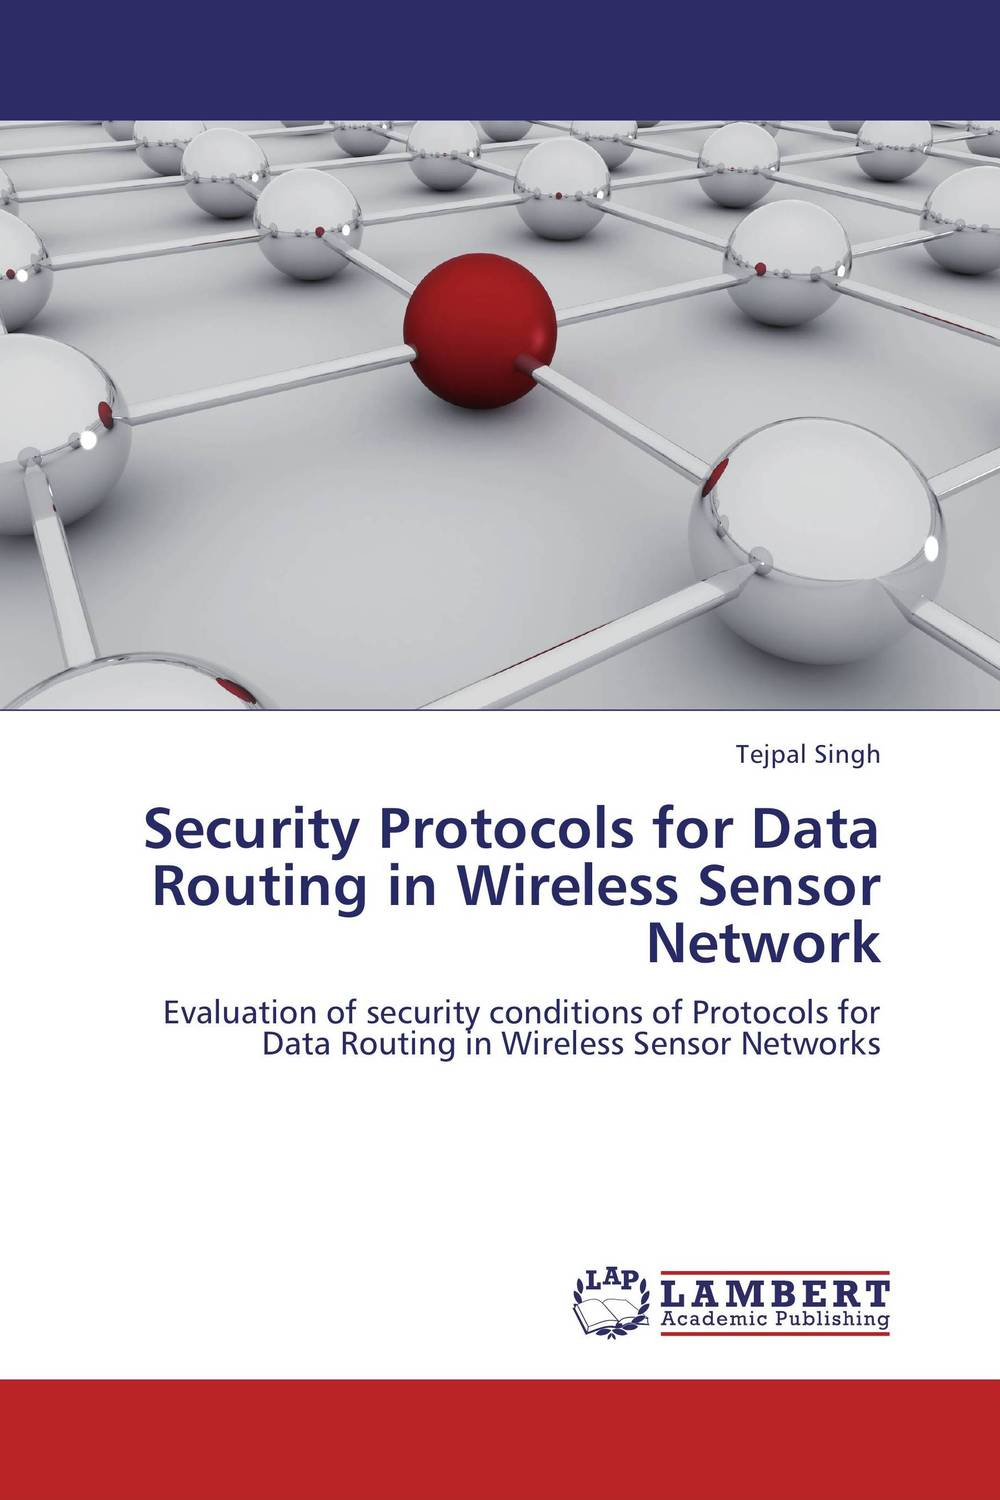 Security Protocols for Data Routing in Wireless Sensor Network intrusion detection system architecture in wireless sensor network